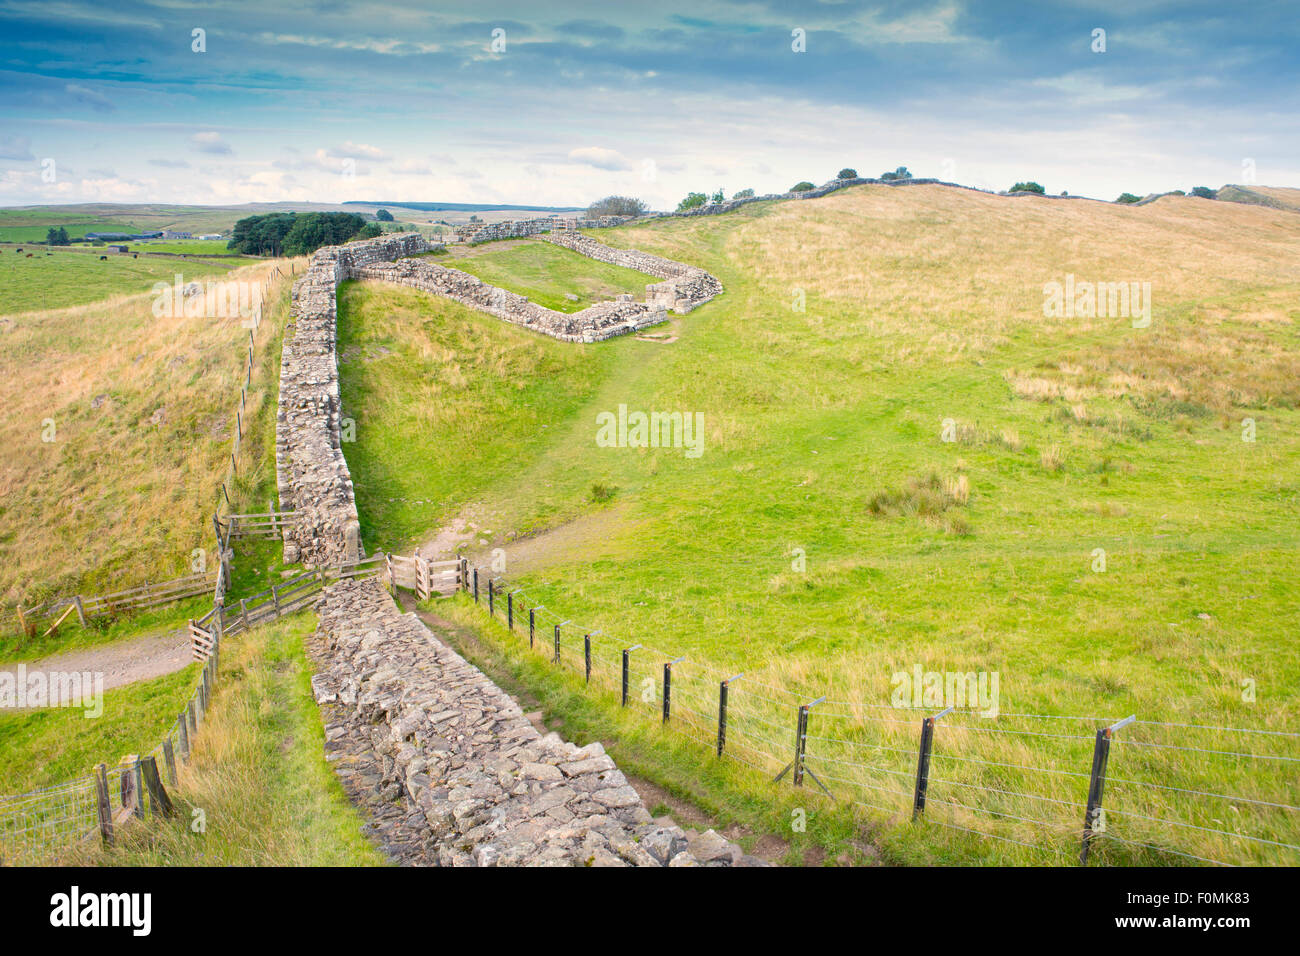 Hadrian's Wall with Housesteads fort in distance, Cumbria, England - Stock Image